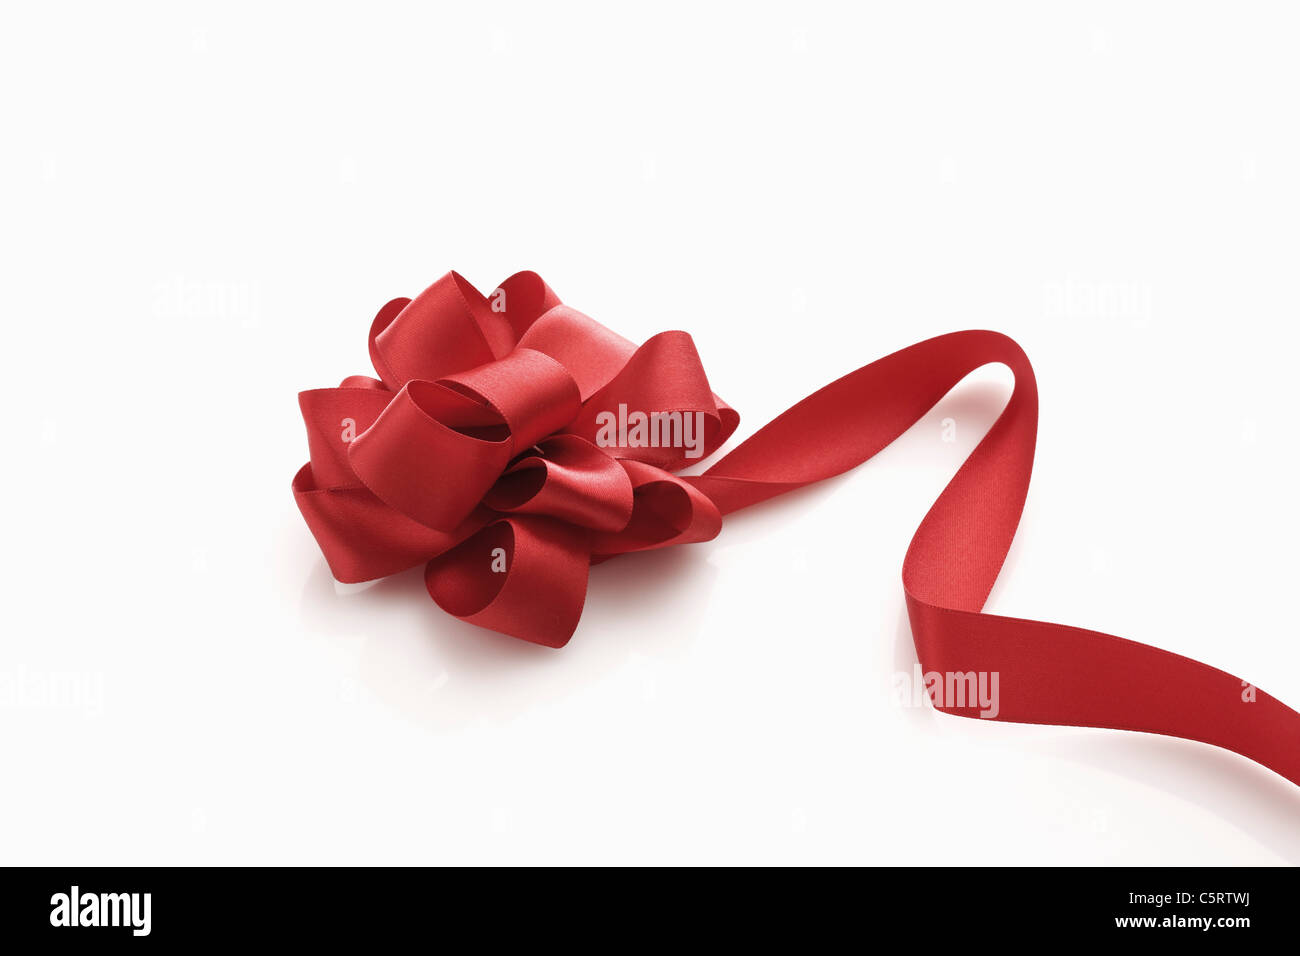 Red gift ribbon, elevated view Stock Photo